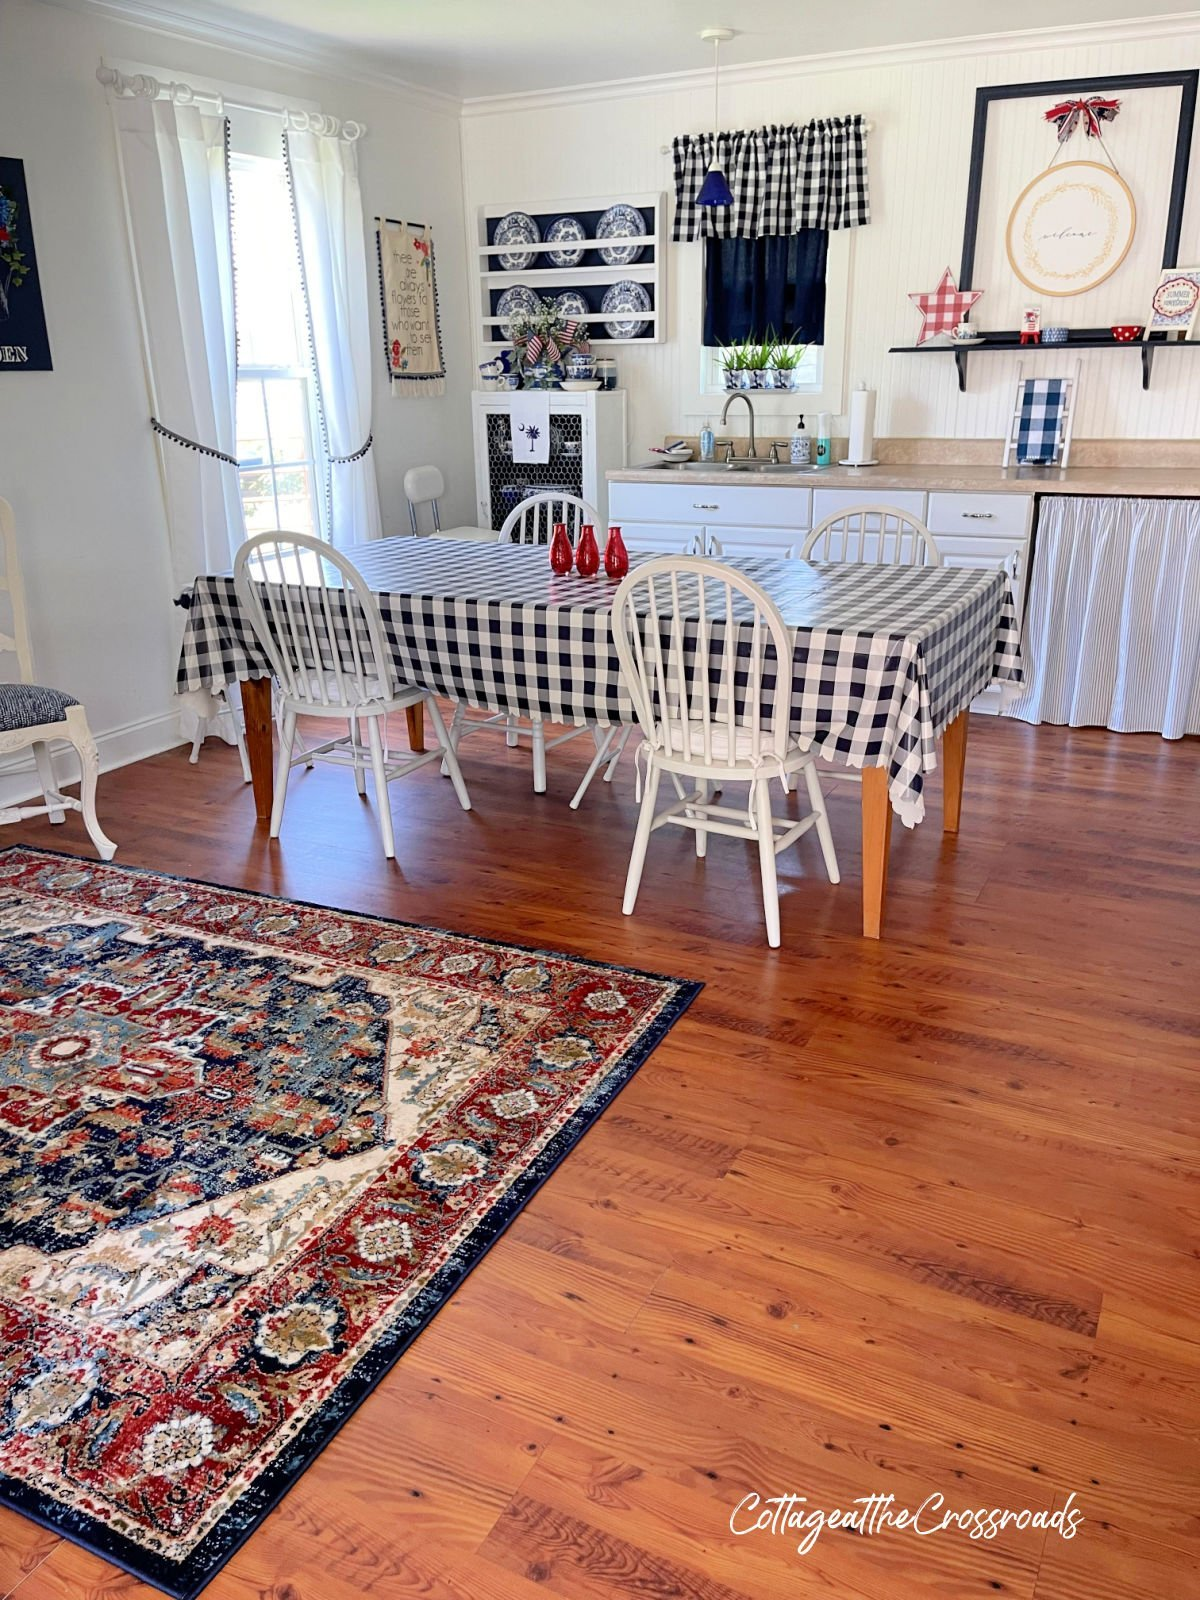 view of craft studio with table and rug